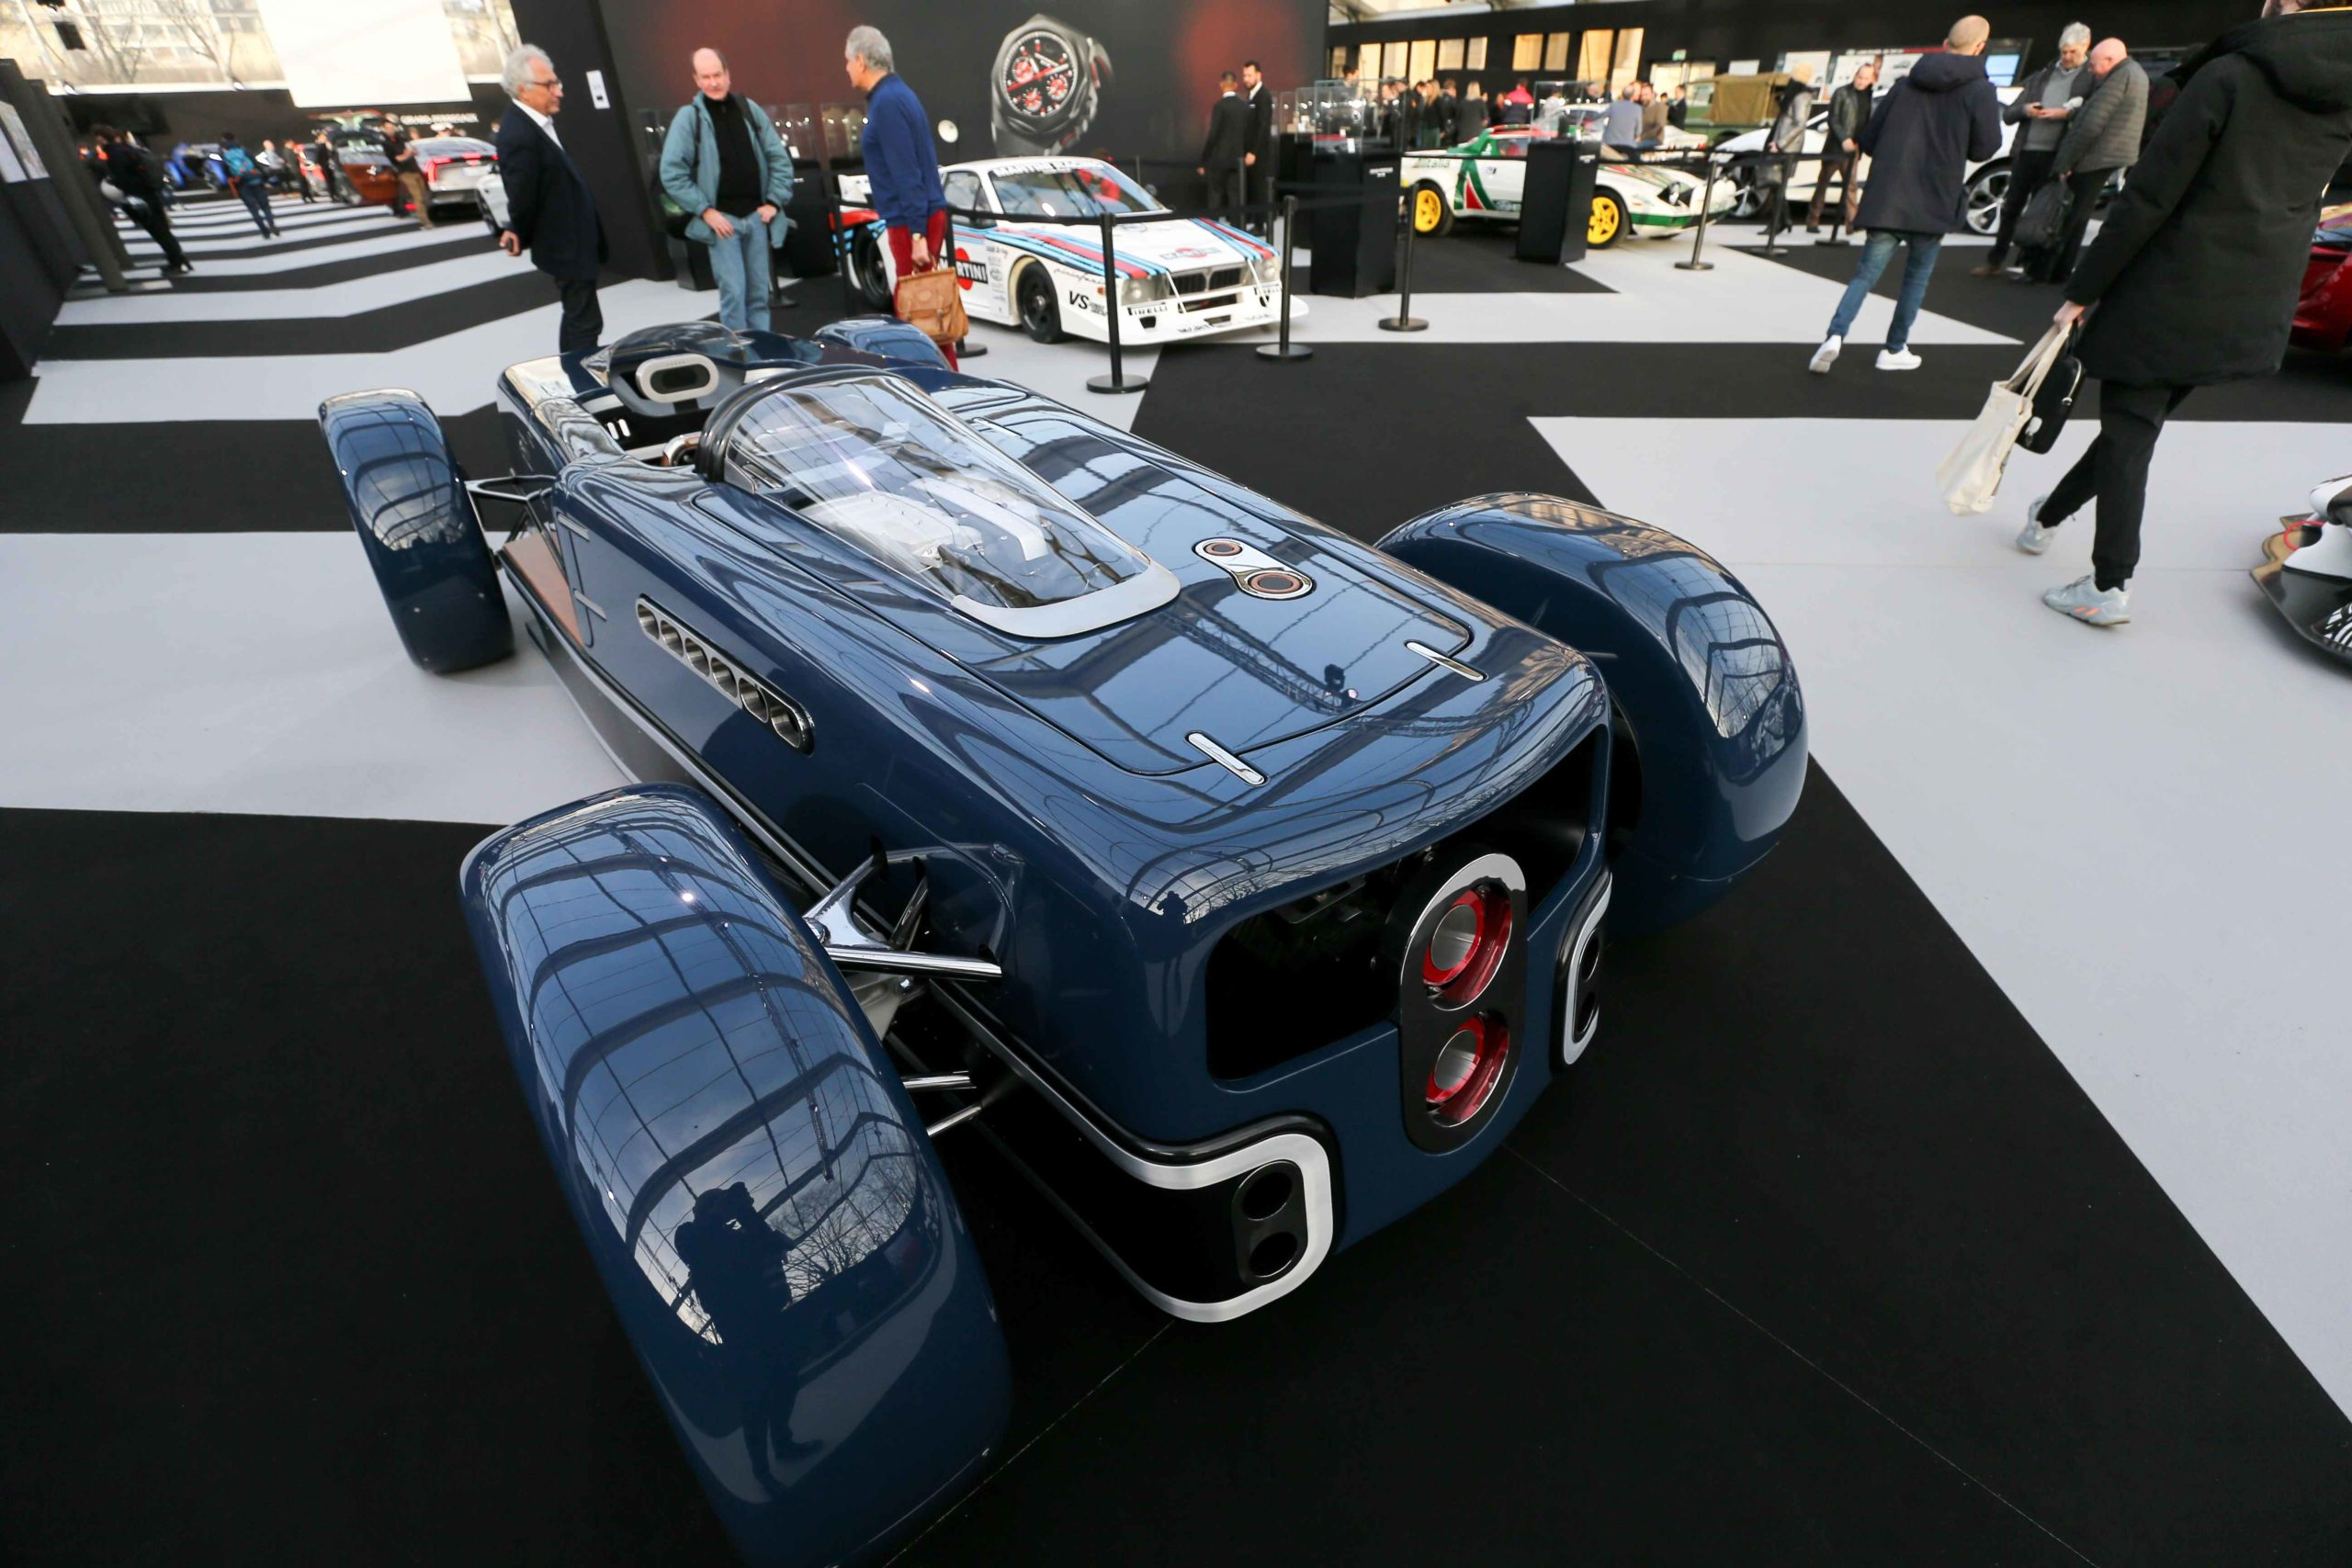 A Krugger FD is displayed during the press day of the 2020 concept-cars exhibition and automobile design in Paris on January 20, 2020. The latest concept-cars and supercars are displayed during this exhibition where the greatest designers of the world show